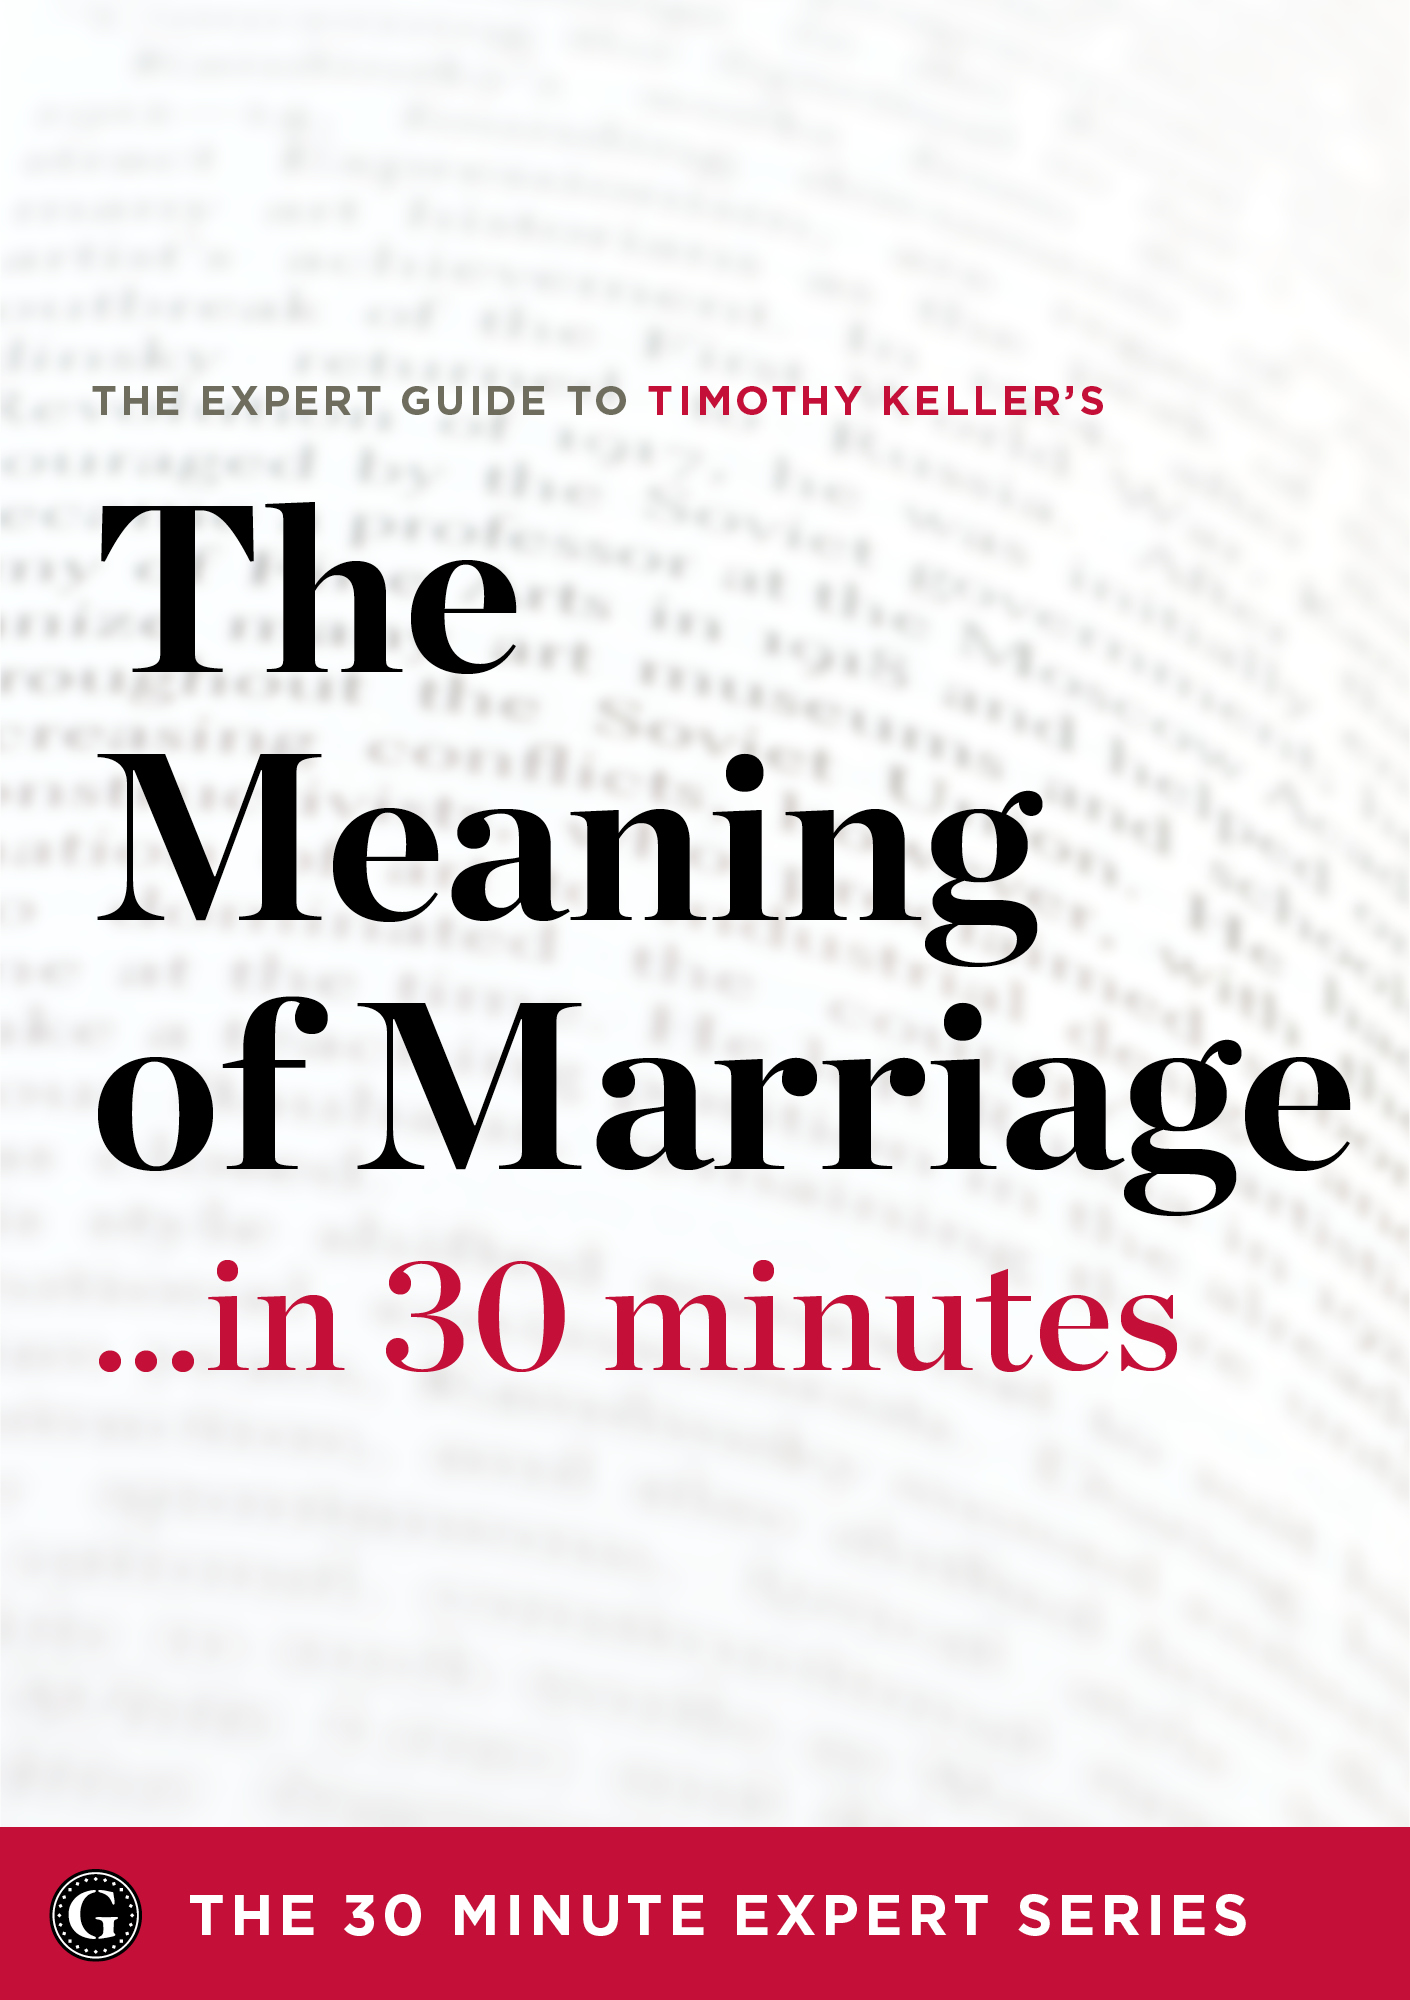 The Meaning of Marriage in 30 Minutes – The Expert Guide to Timothy Keller's Critically Acclaimed Book